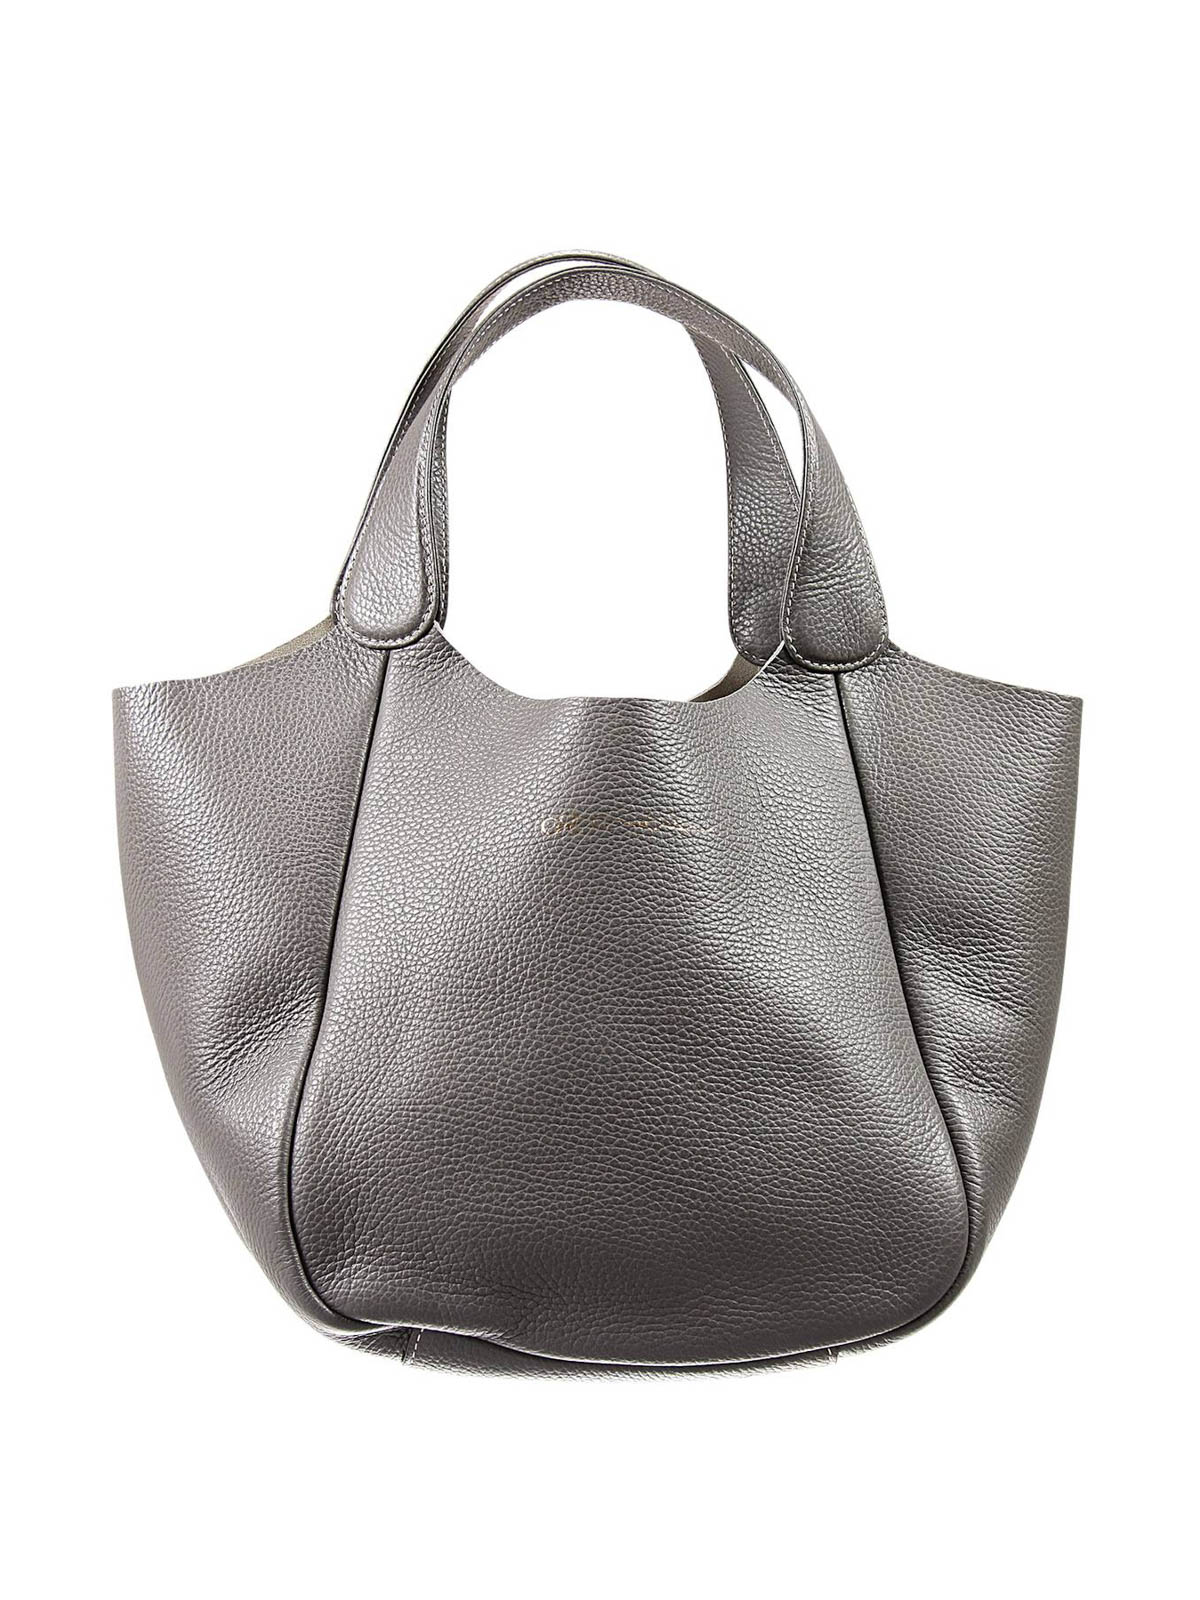 sports shoes 01229 0f27f Cruciani - Small Milano City bag - shoulder bags - AD13319 ...